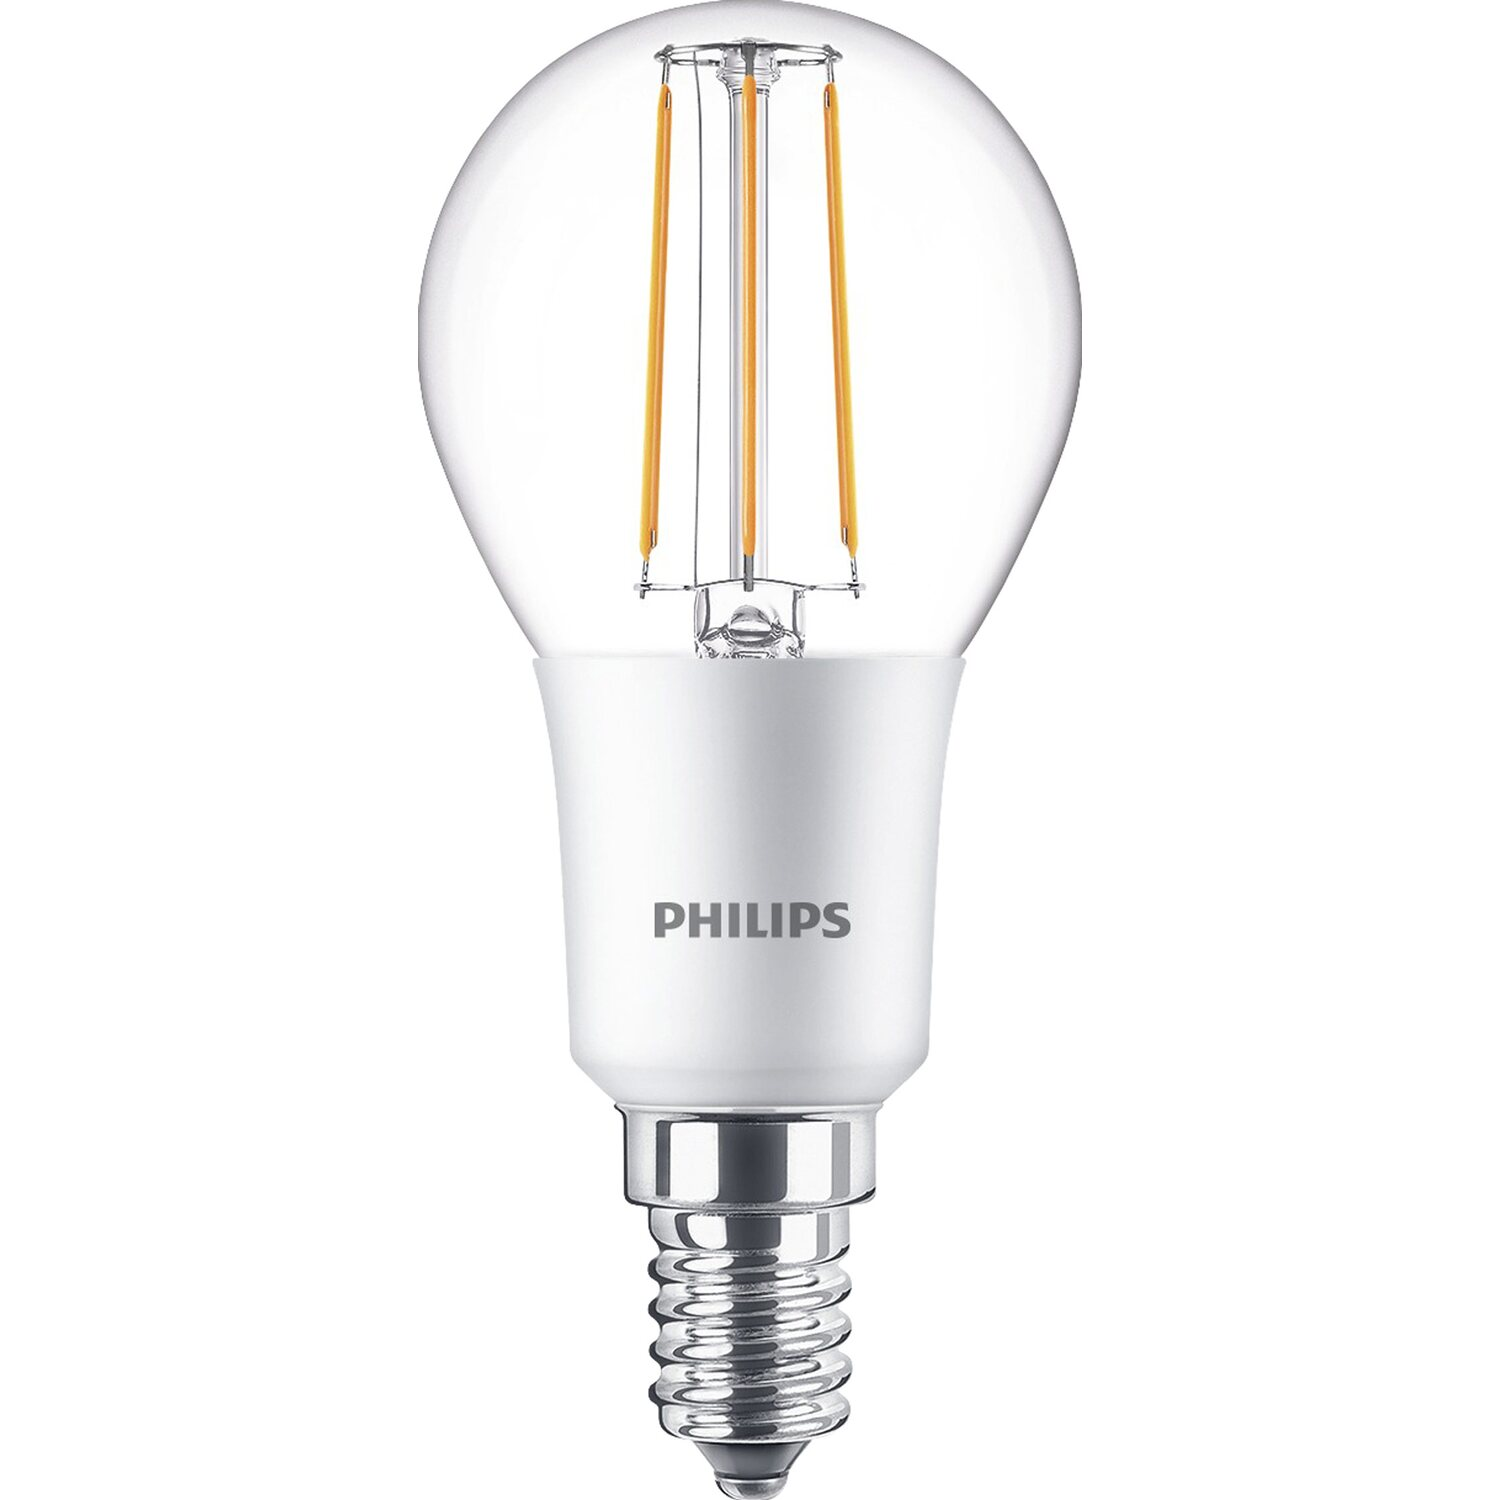 philips led leuchtmittel tropfenform classic e14 5 w 470 lm warmwei eek a kaufen bei obi. Black Bedroom Furniture Sets. Home Design Ideas